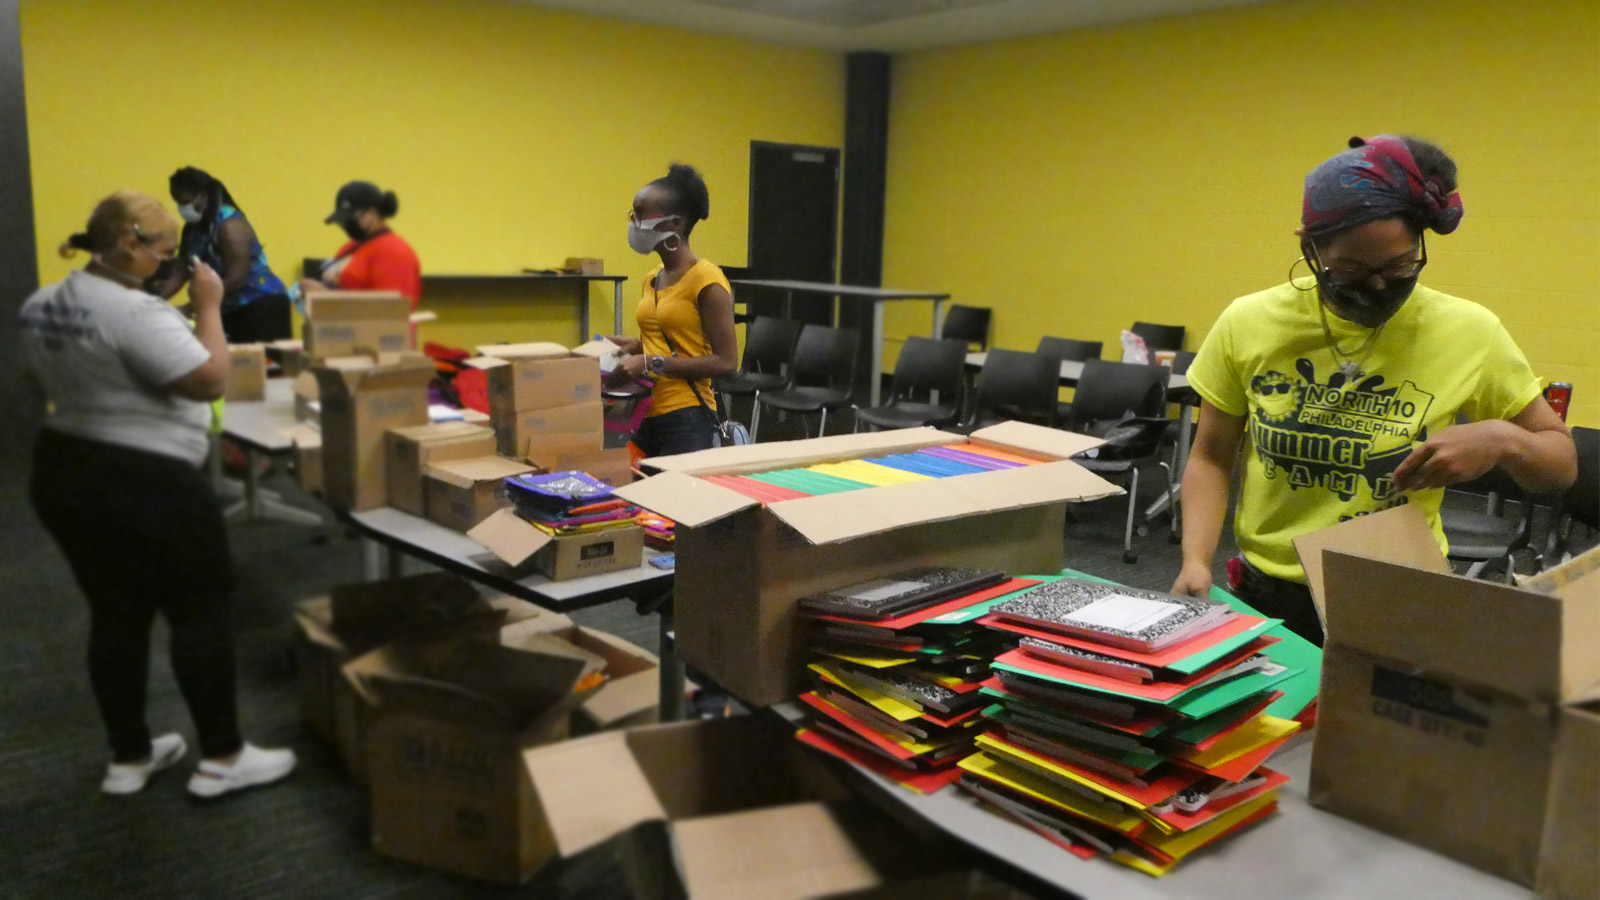 Educational materials at Lenfest Center with staff and volunteers